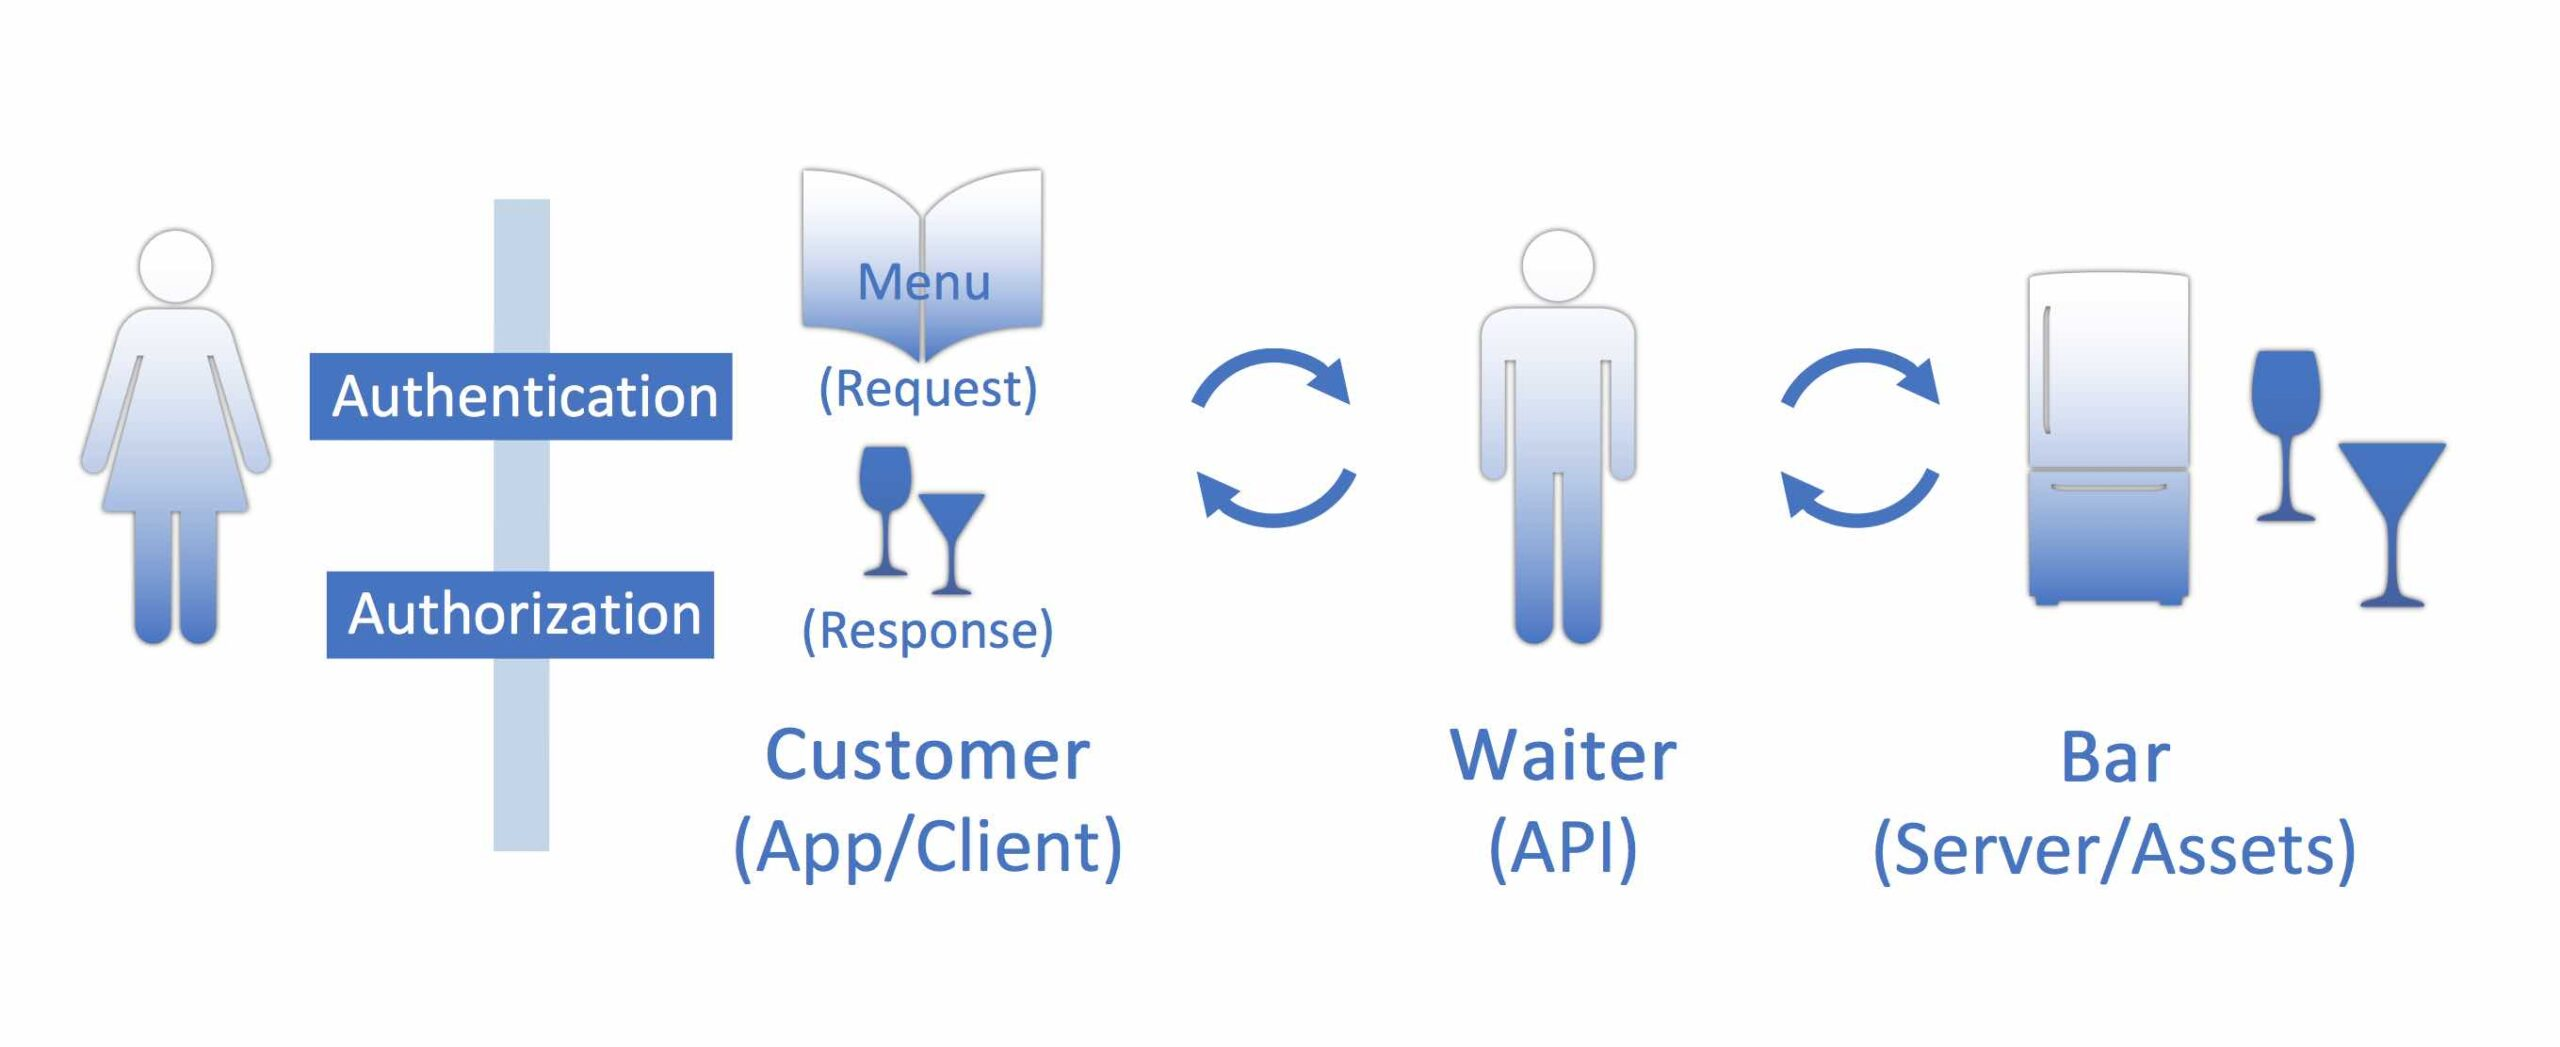 RestaurantAnalogy_Authentication and Security